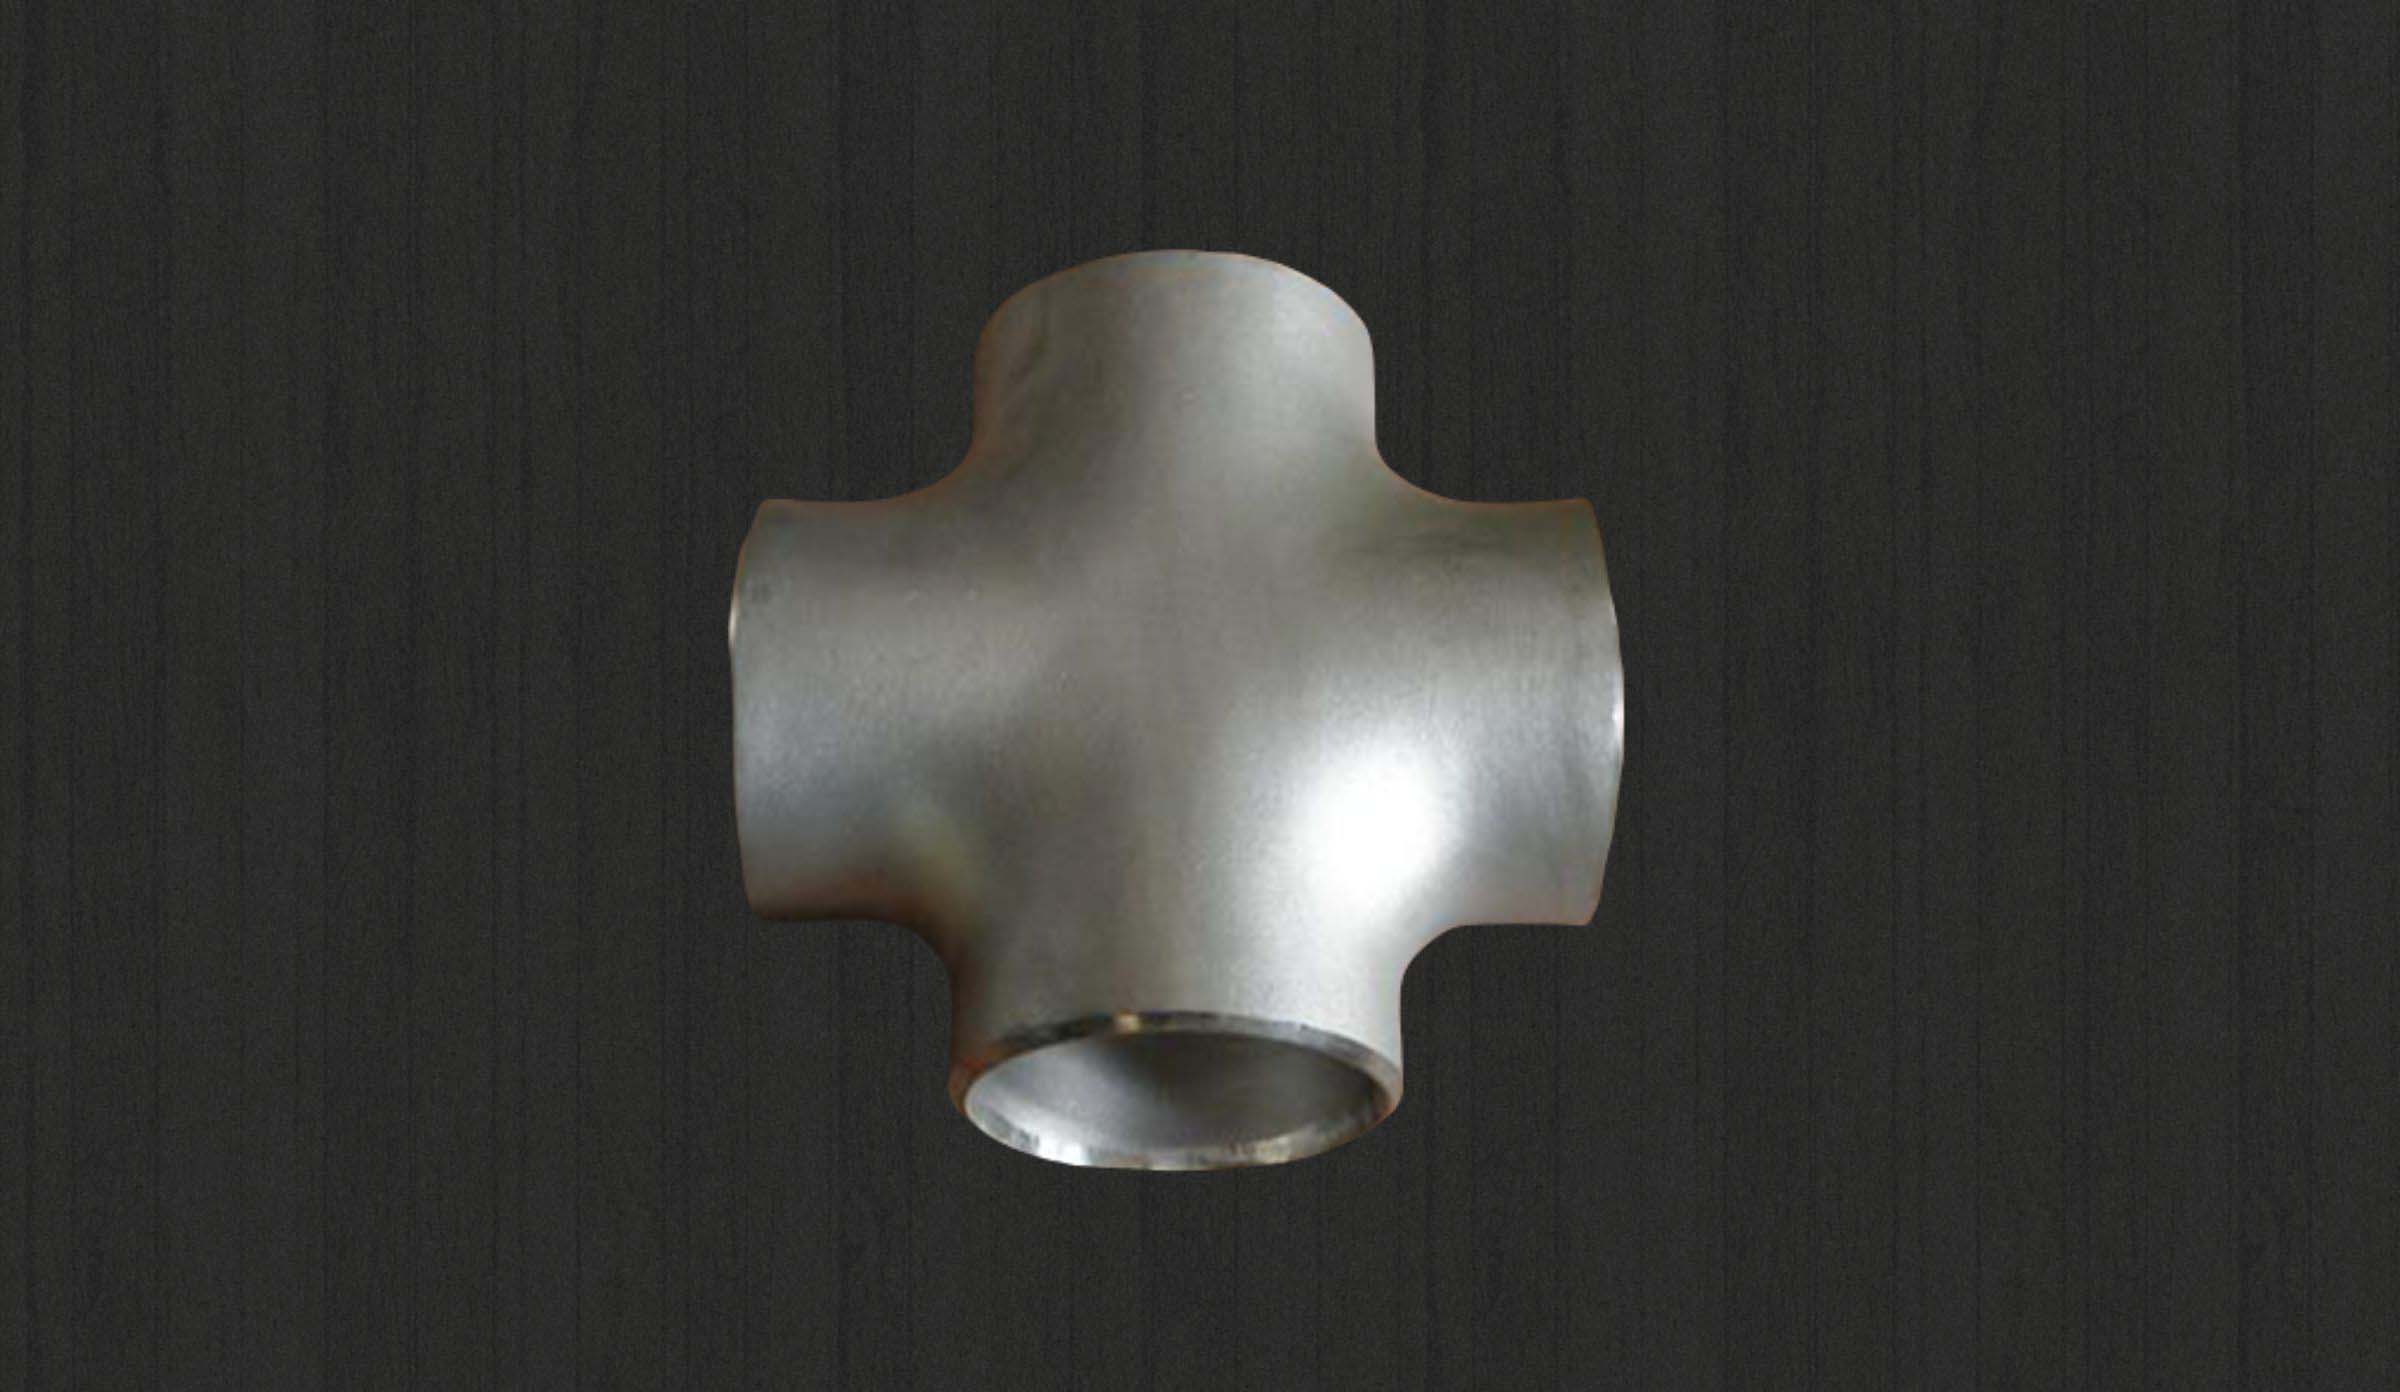 Stainless Steel Buttweld Cross